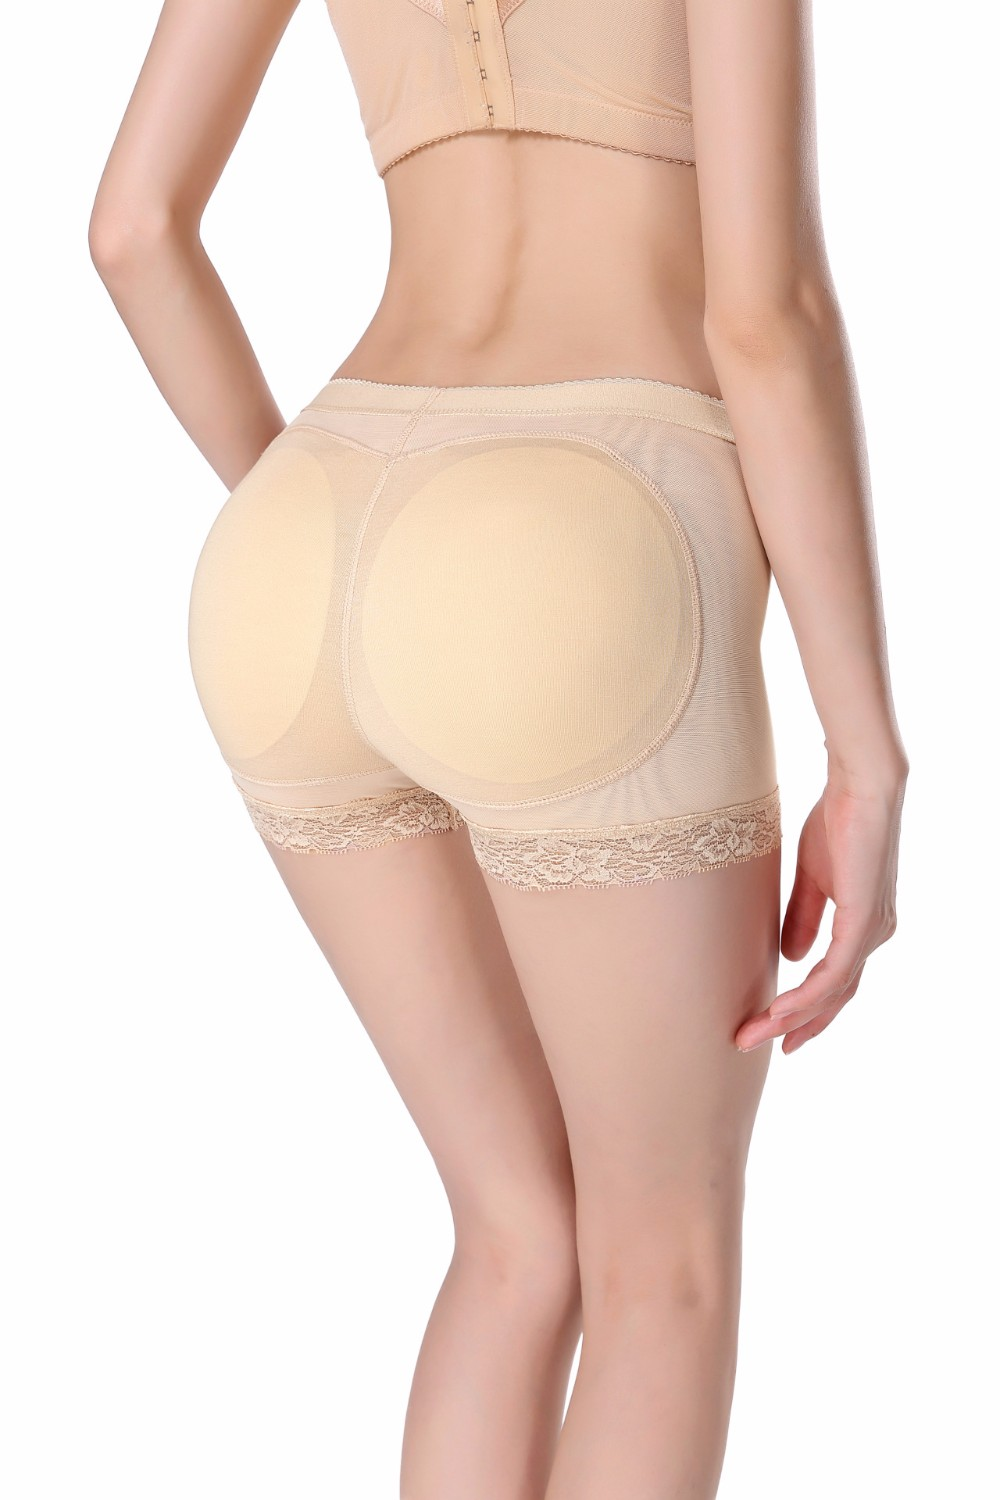 Womens Seamless Sexy Butt Lifter Padded Lace Panty Enhancer Underwear Girls lace Booty Booster Briefs 5